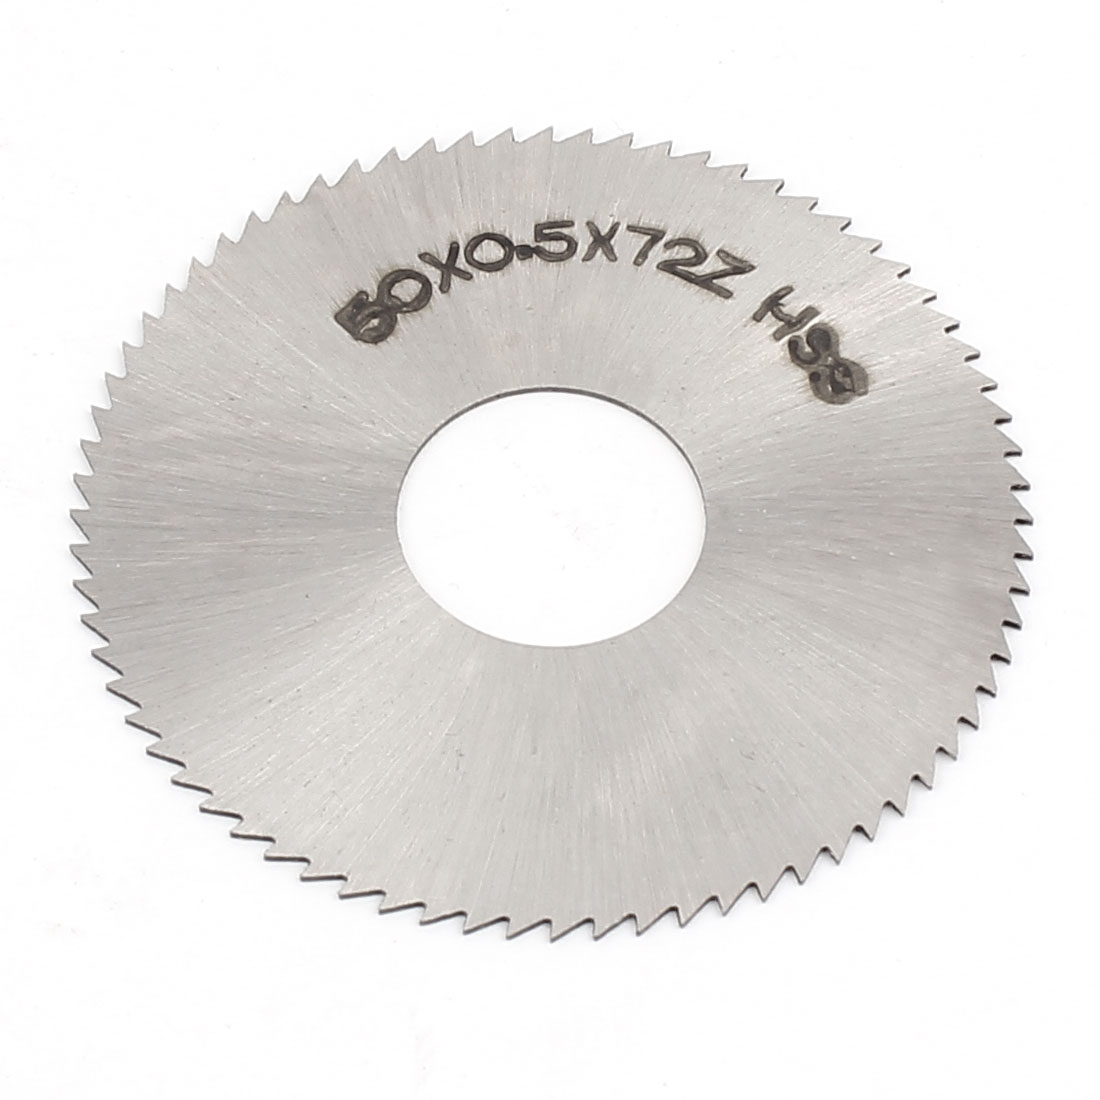 50 x 0.5mm 72 Teeth Steel Slitting Saw Slipper Plate Sheet Silver Tone